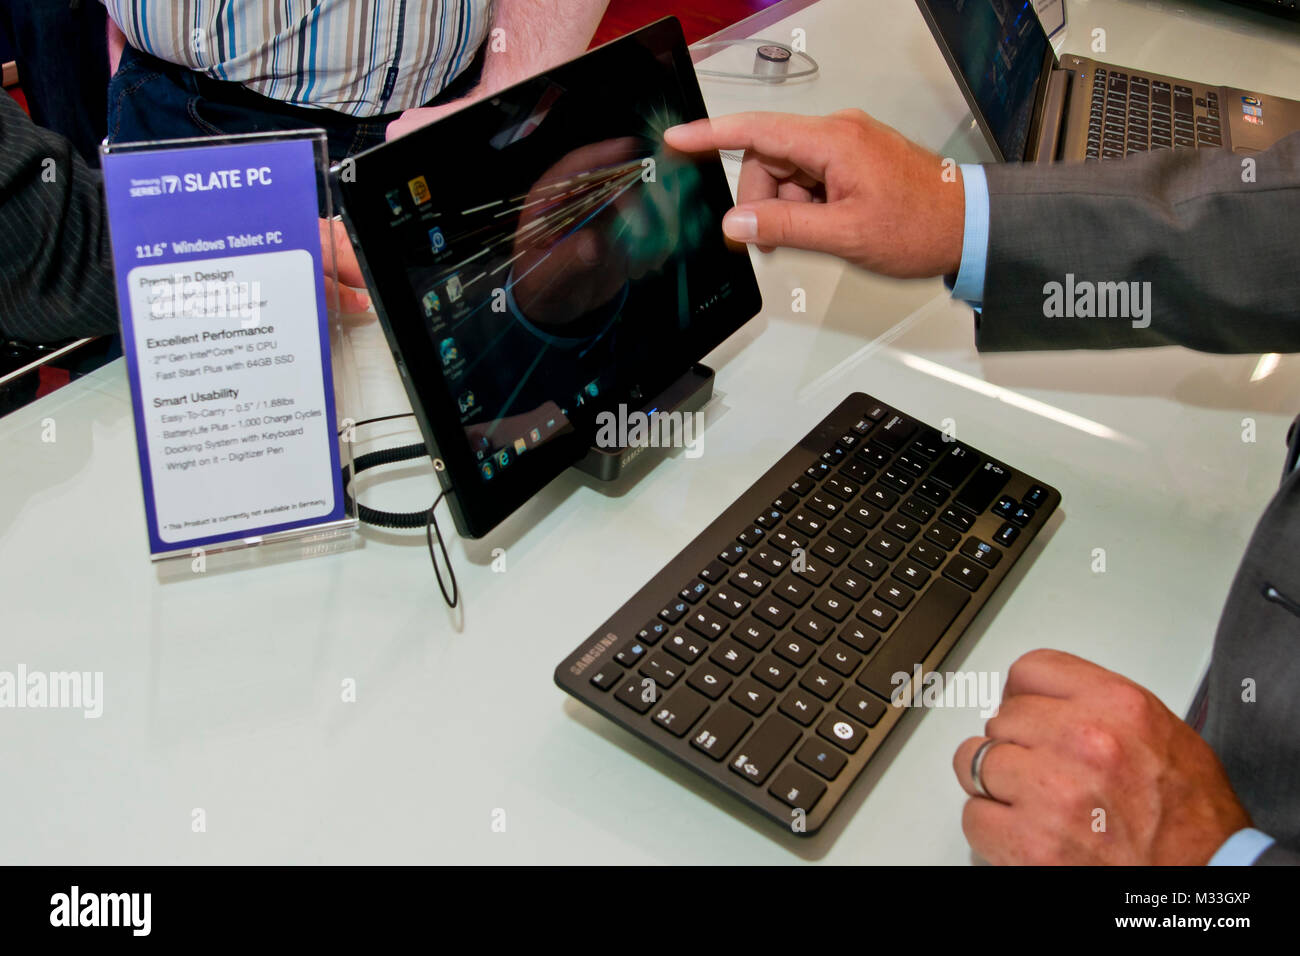 Der Tablet 6 Windows Tablet Pc Stock Photos 6 Windows Tablet Pc Stock